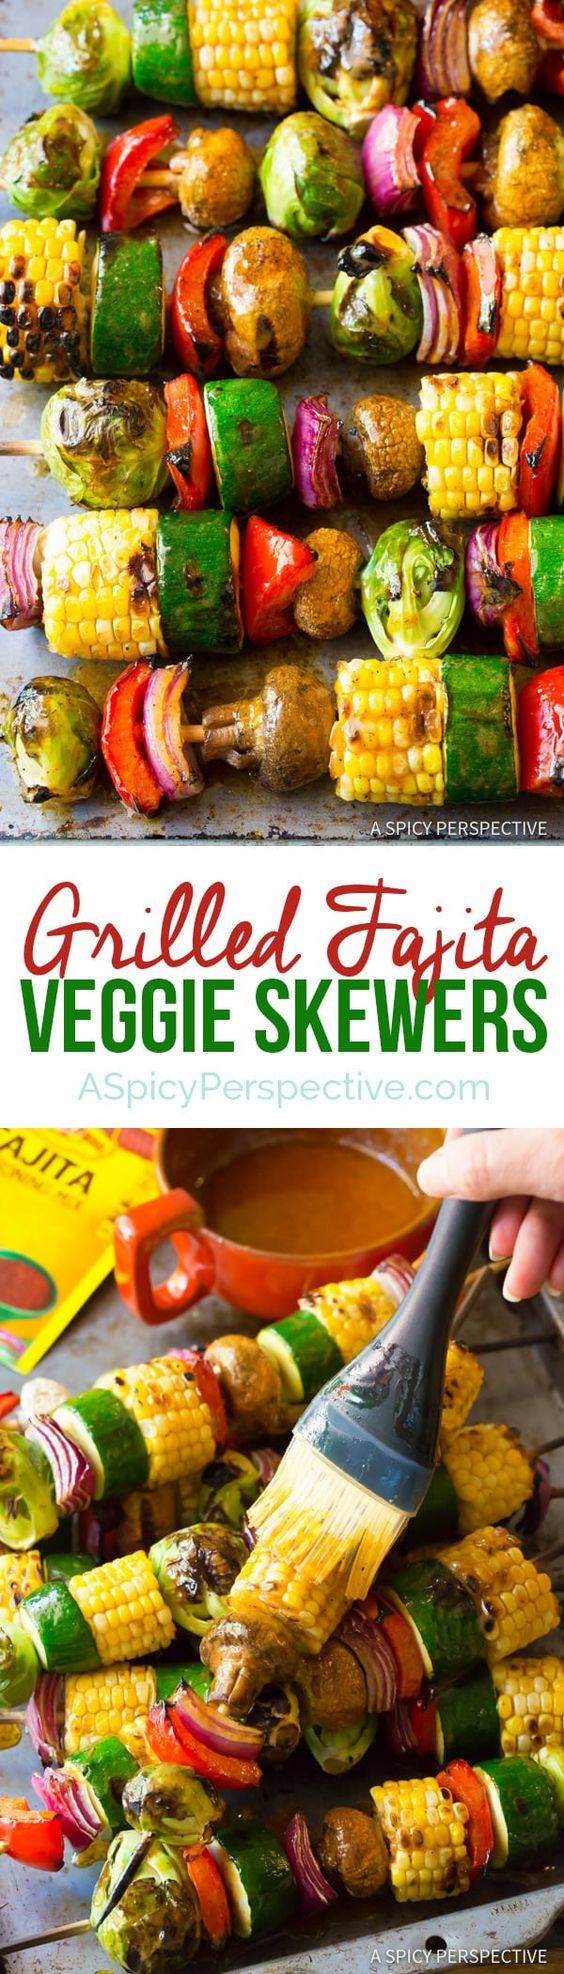 Vegetable skewers with fajita seasoning